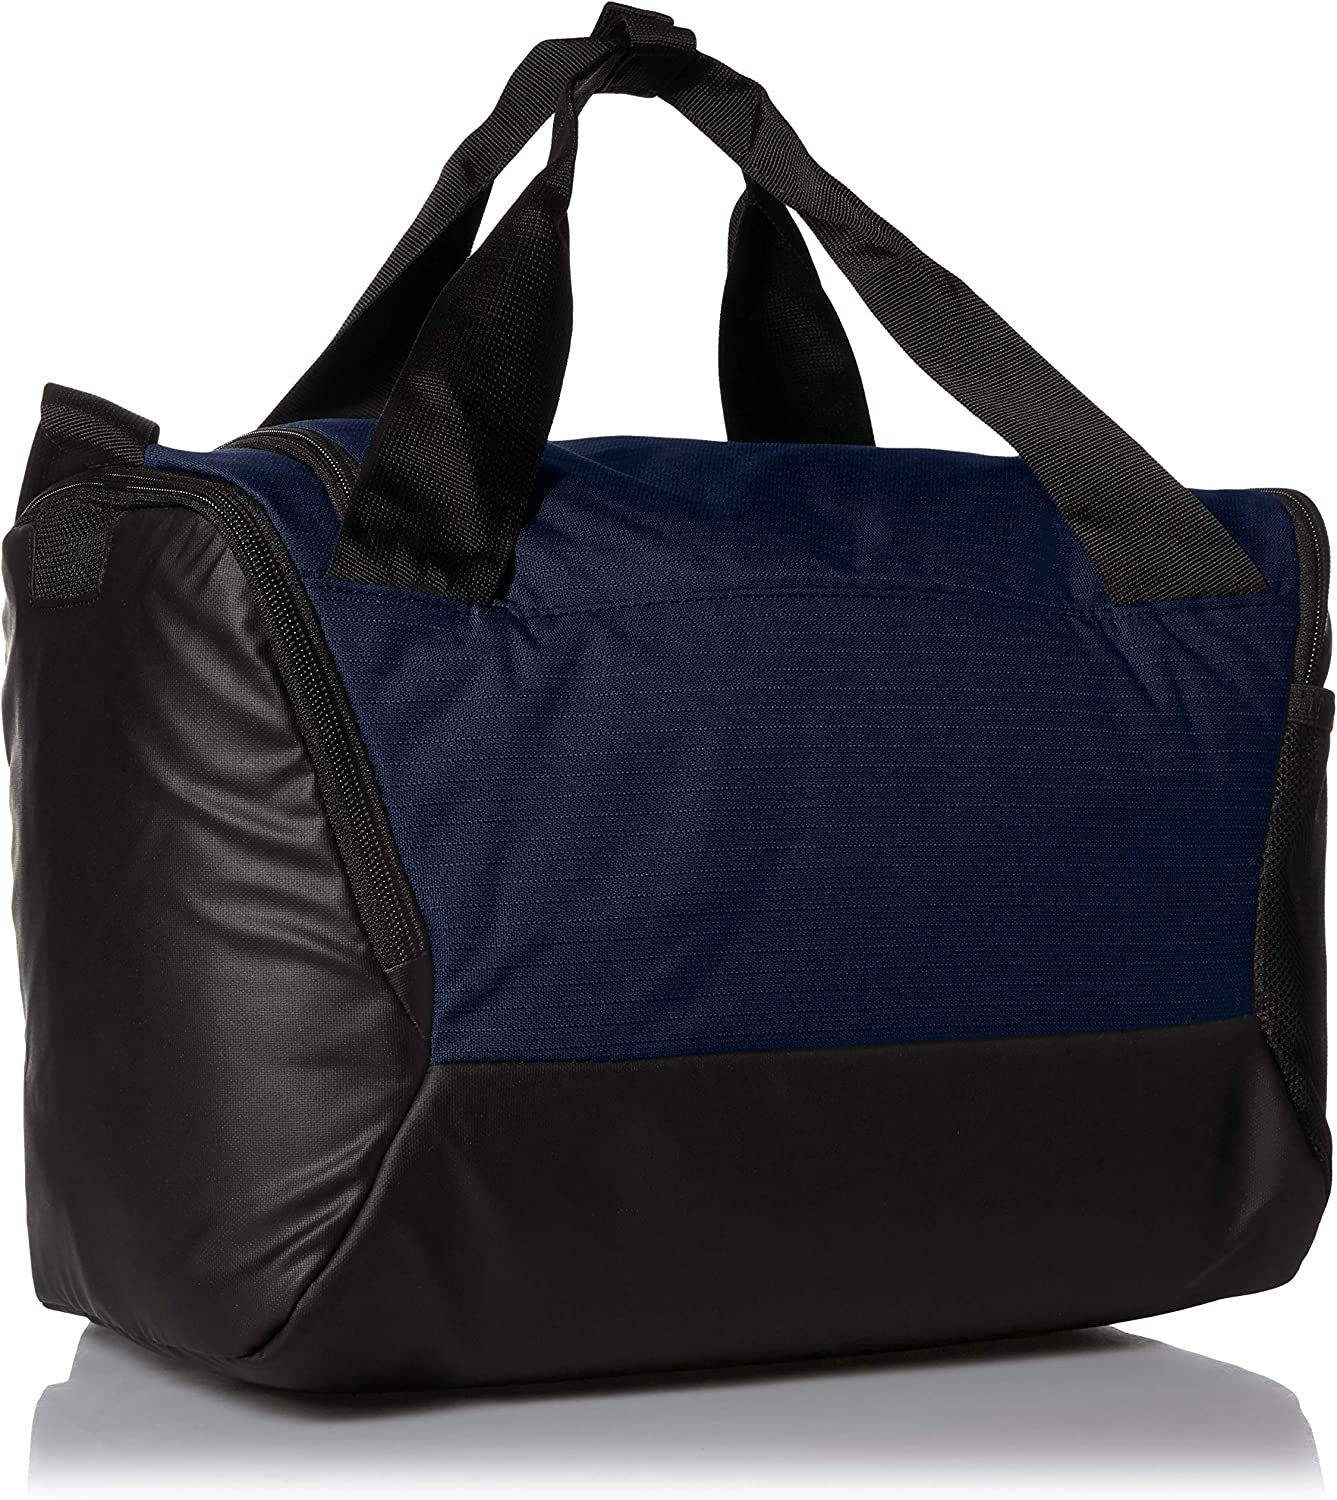 Nike Brasilia Small Grip Bag Navy